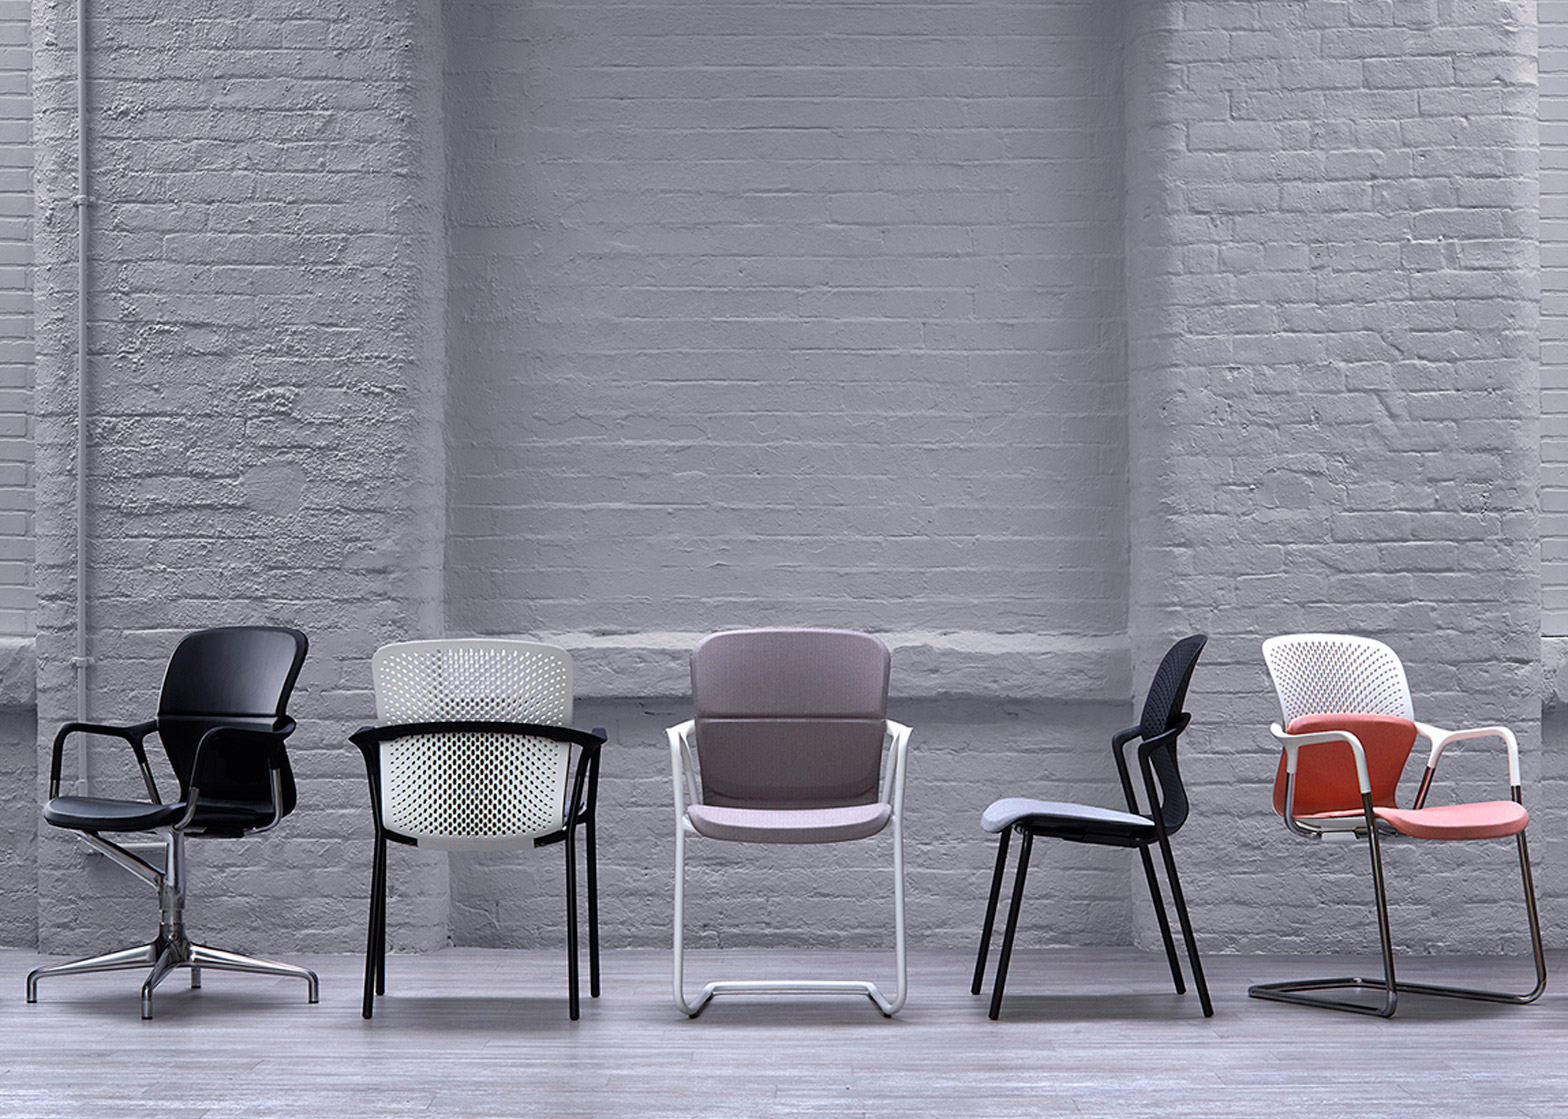 forpeople s keyn office chairs for herman miller are made